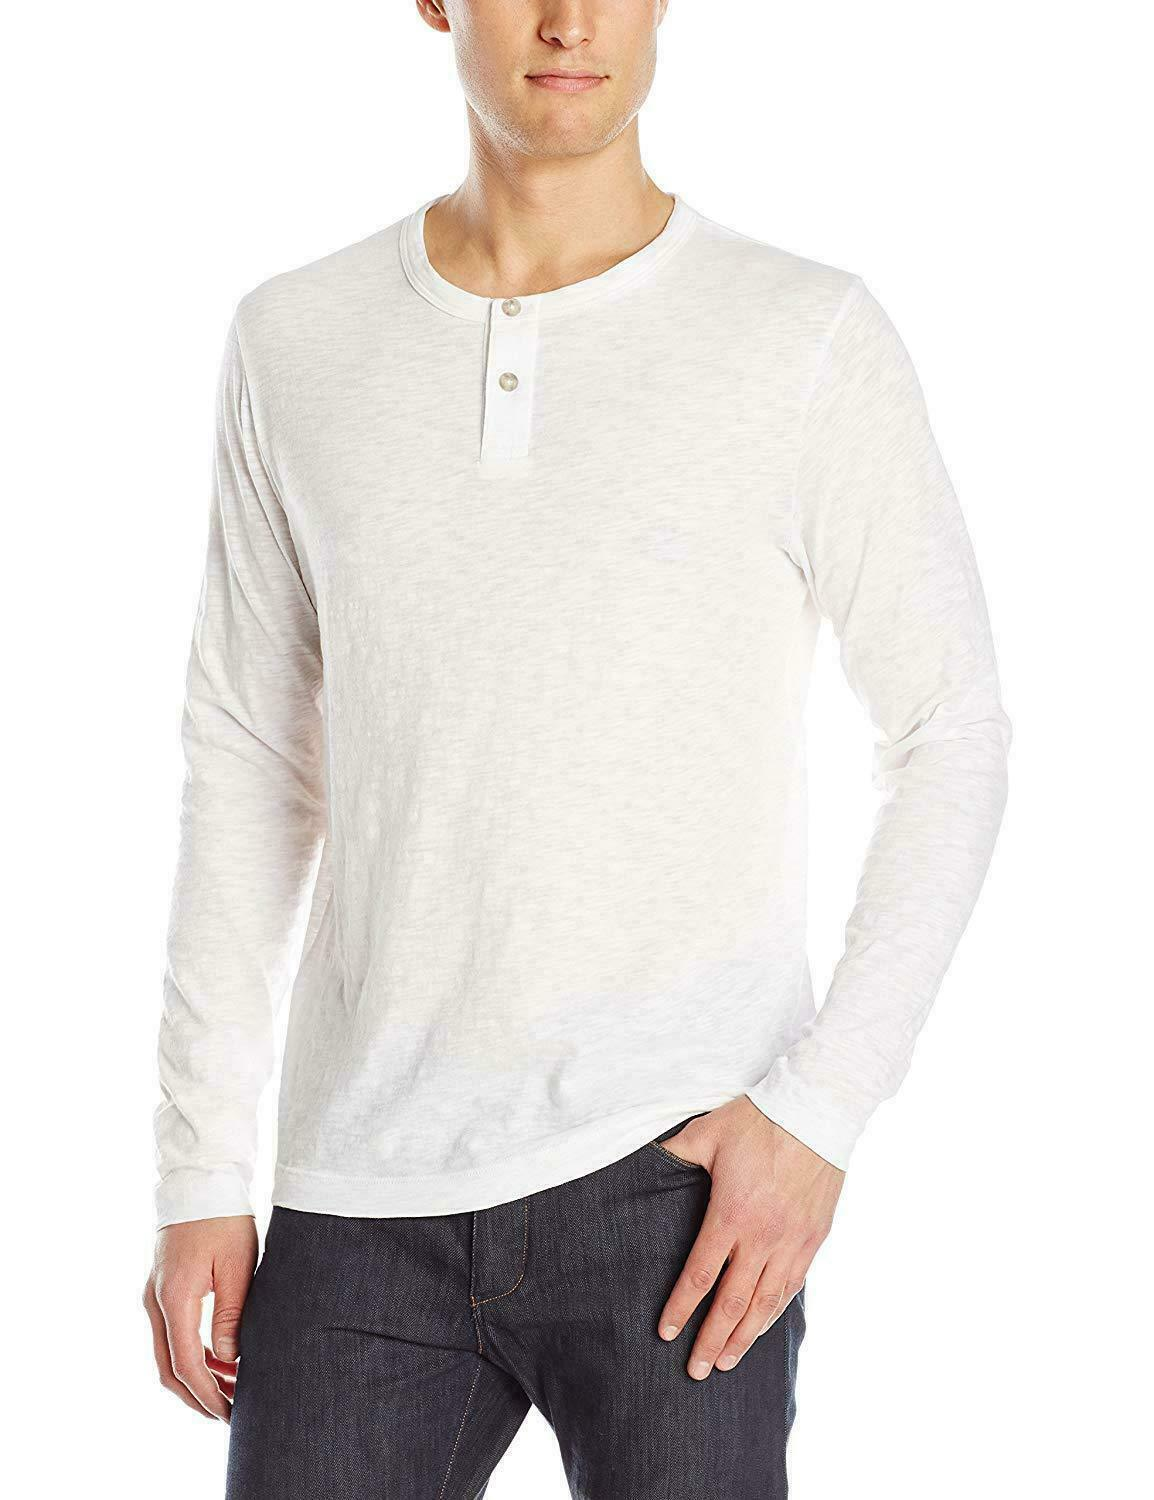 Theory Mens Weiß Slub Cotton Long Sleeve Henley Shirt M 2XL